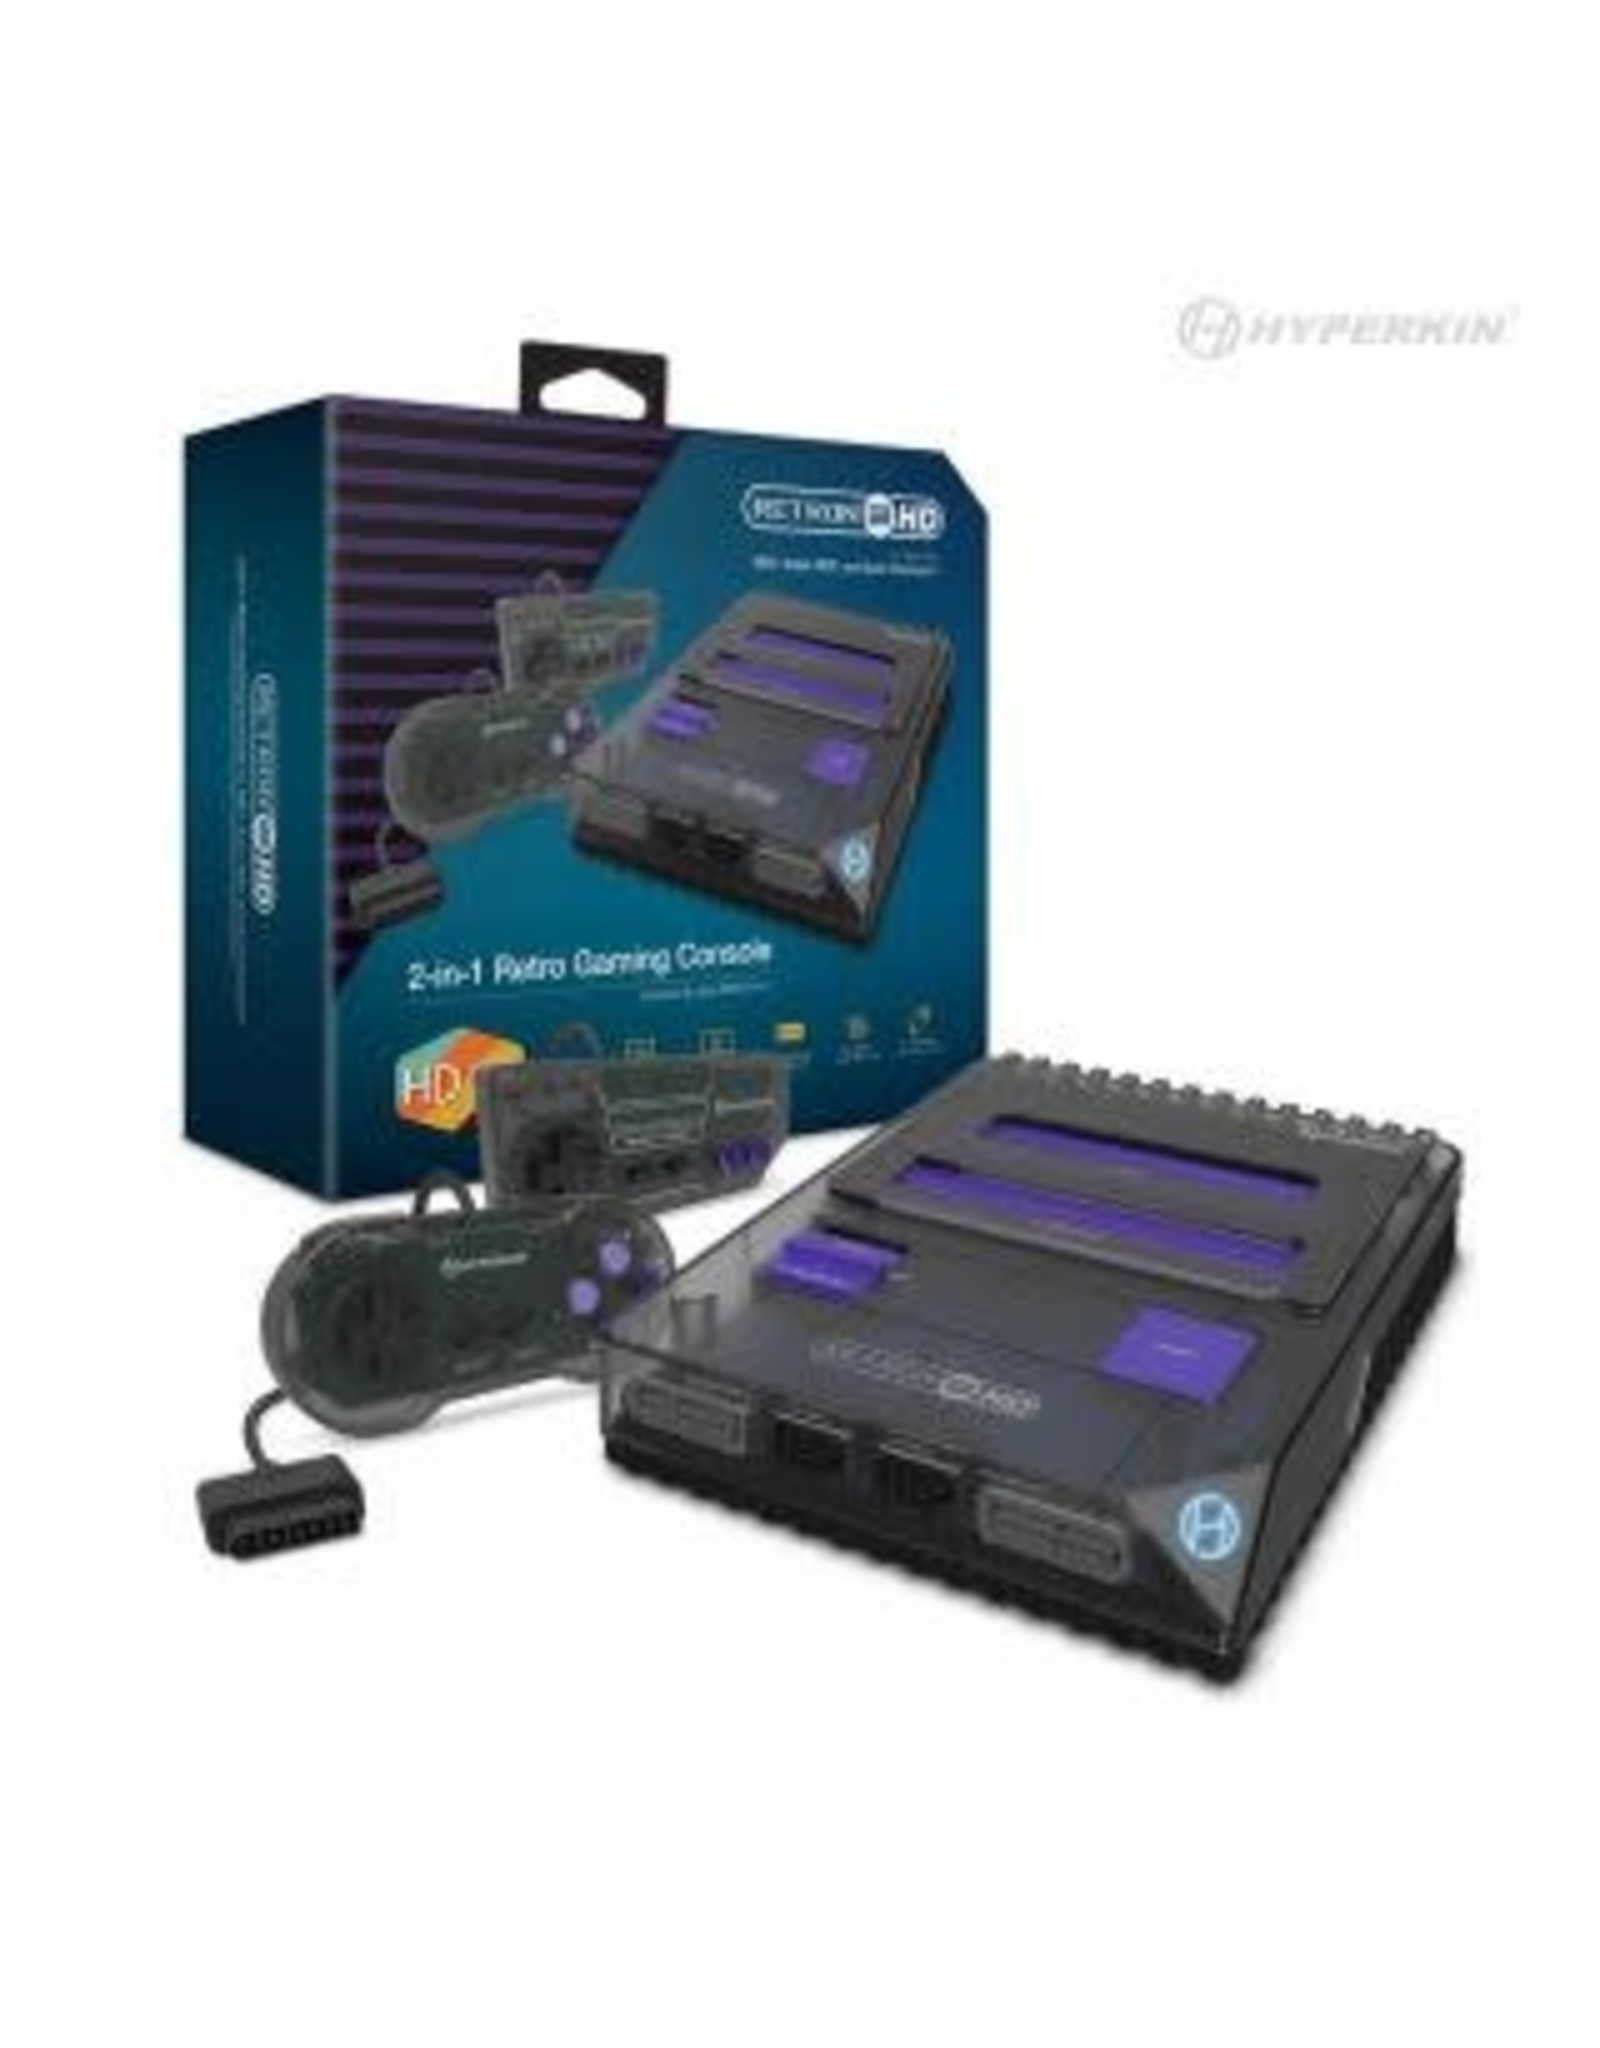 RetroN 2 HD Gaming Console for NES/ Super NES (Space Black)